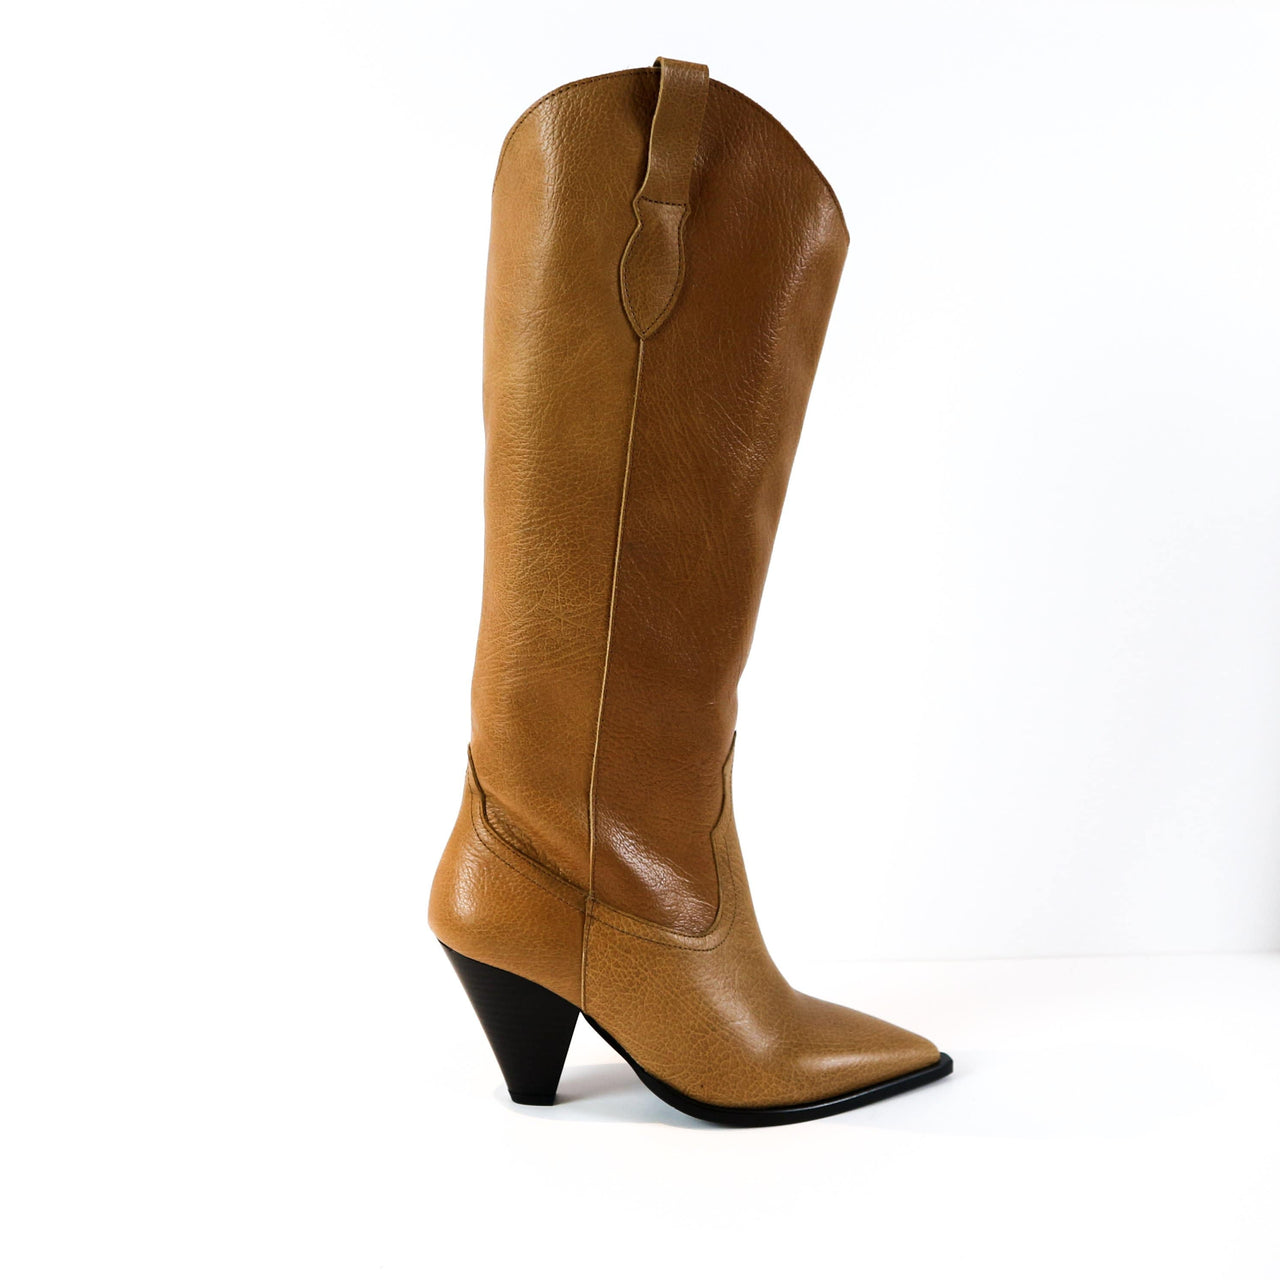 ELISE | Brown Leather Knee High Boots - TrystShoes